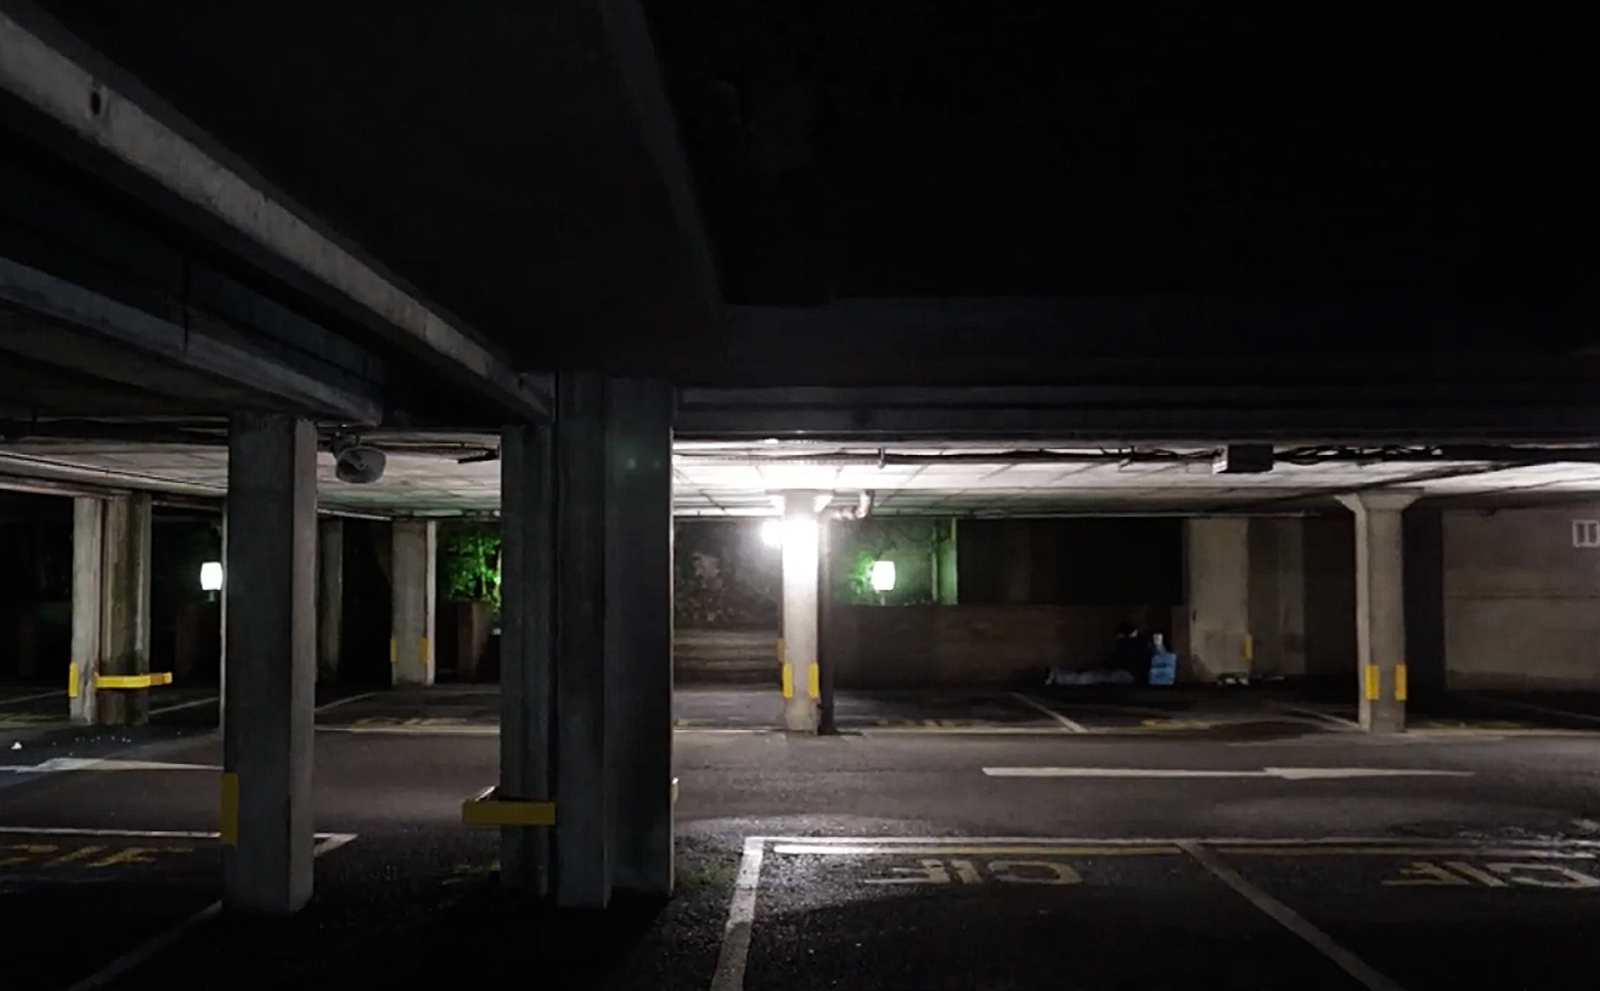 Image - One homeless man slept in this multi-storey car park after being refused a hostel bed